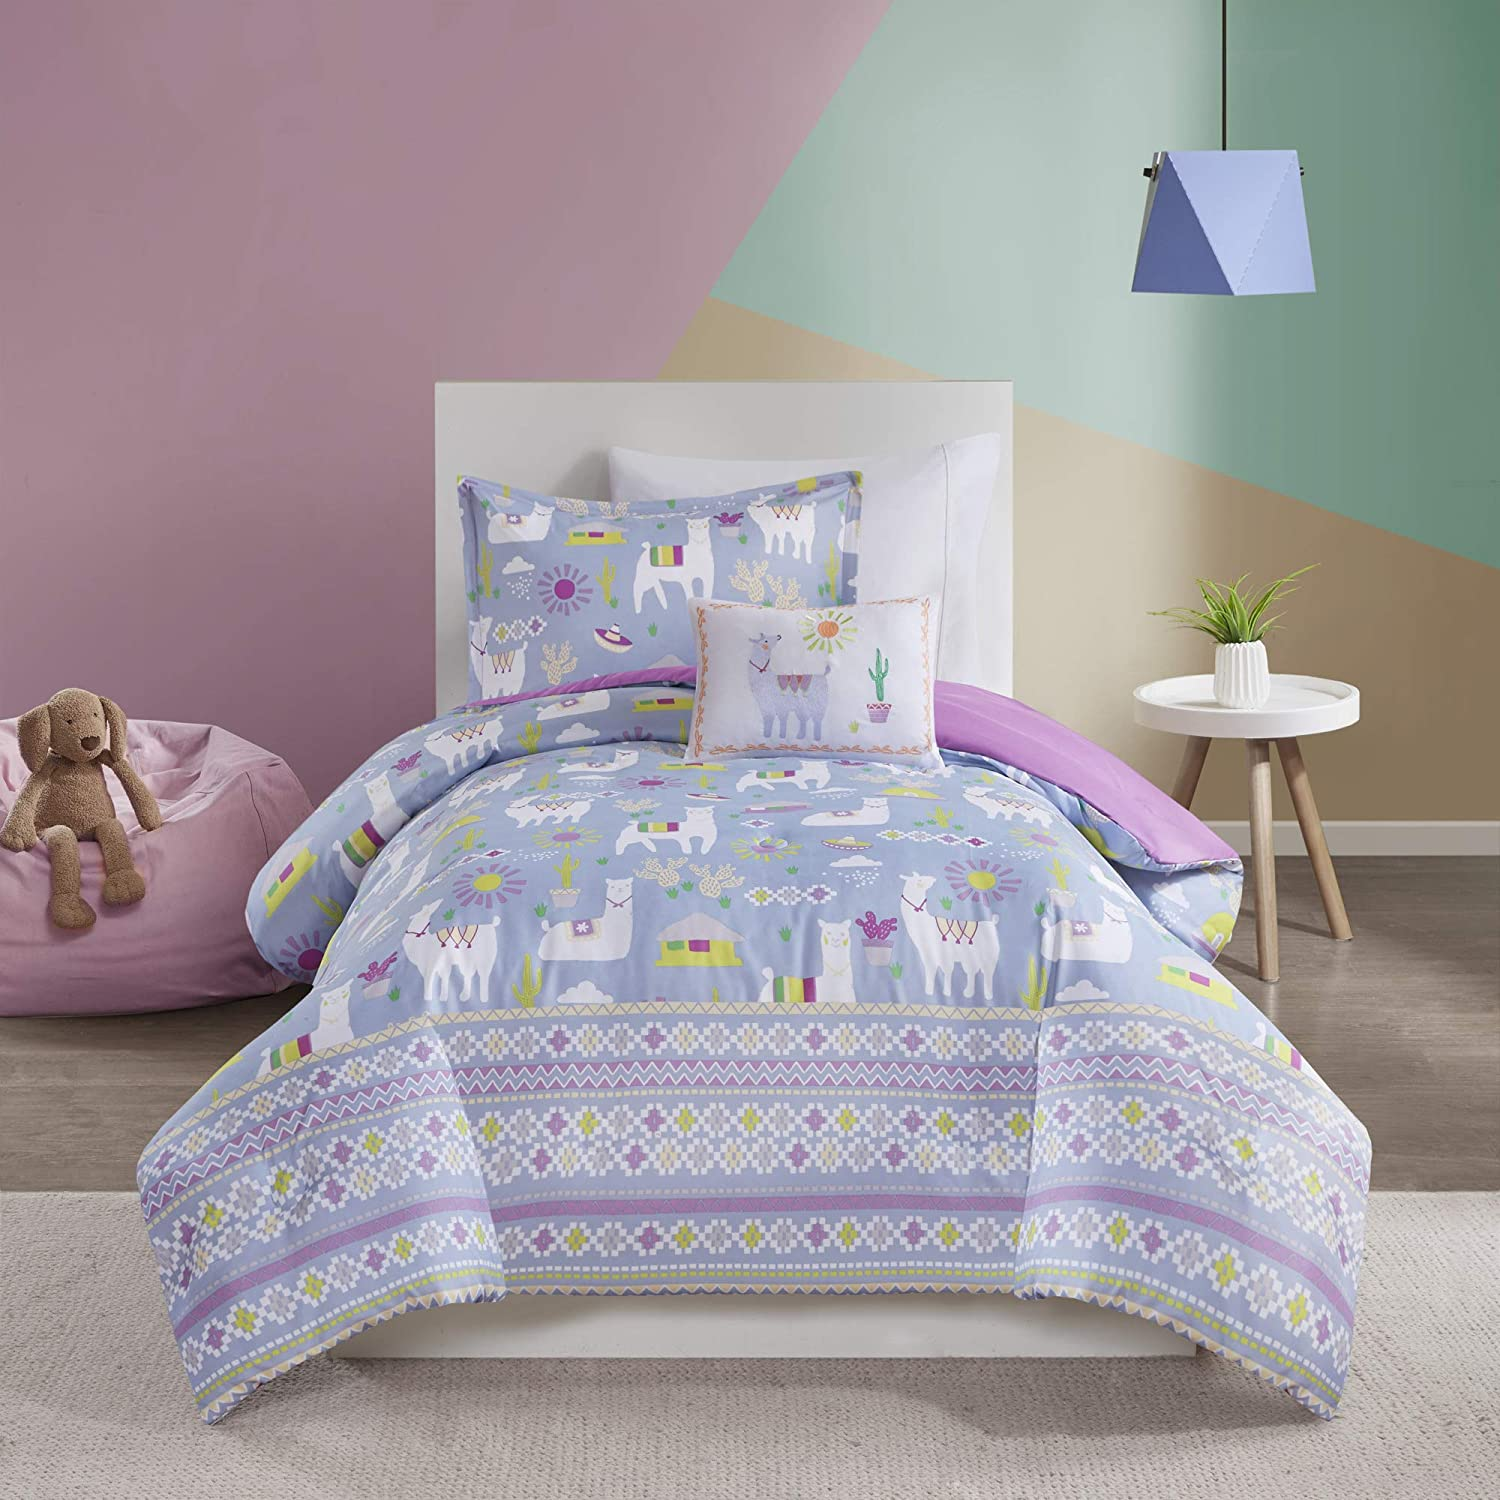 Mi Zone Kids Andes Comforter Cute Llama Cactus House Printed Striped Embroidered Pillow Ultra-Soft Overfilled Down Alternative Hypoallergenic All Season Bedding-Set, Full/Queen, Lavender